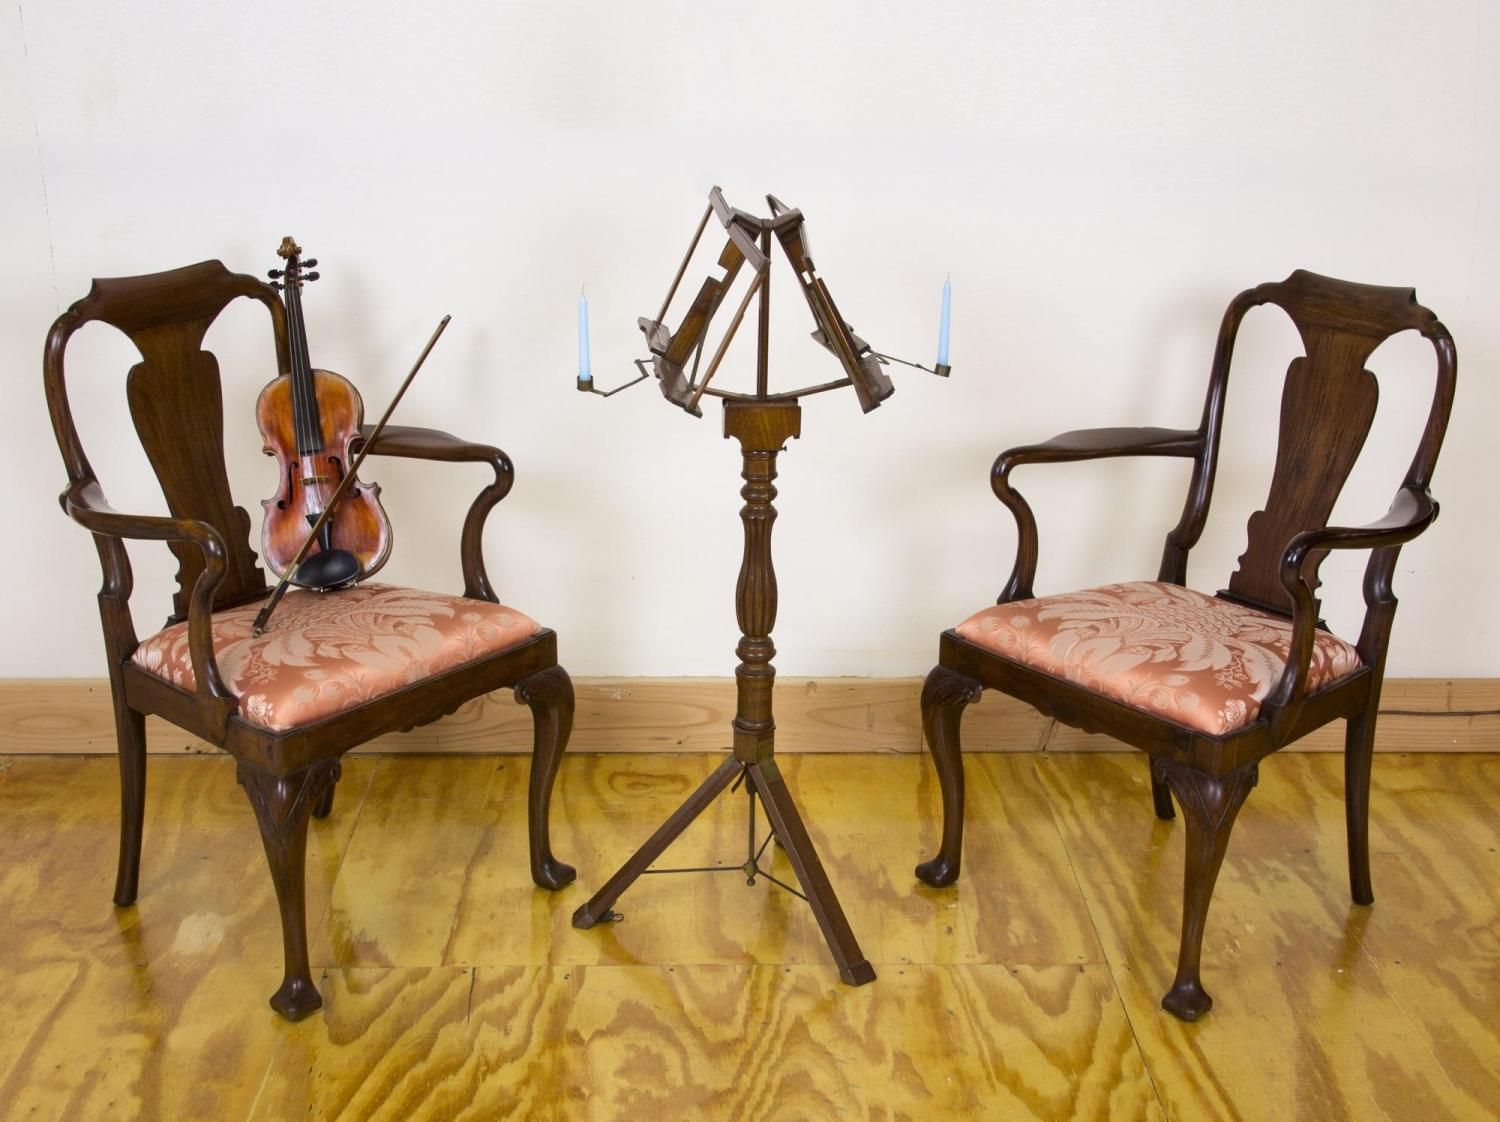 A Rare Classical Mahogany Metamorphic Duet Musical Stand, Probably British  Campaign Furniture, C.1840